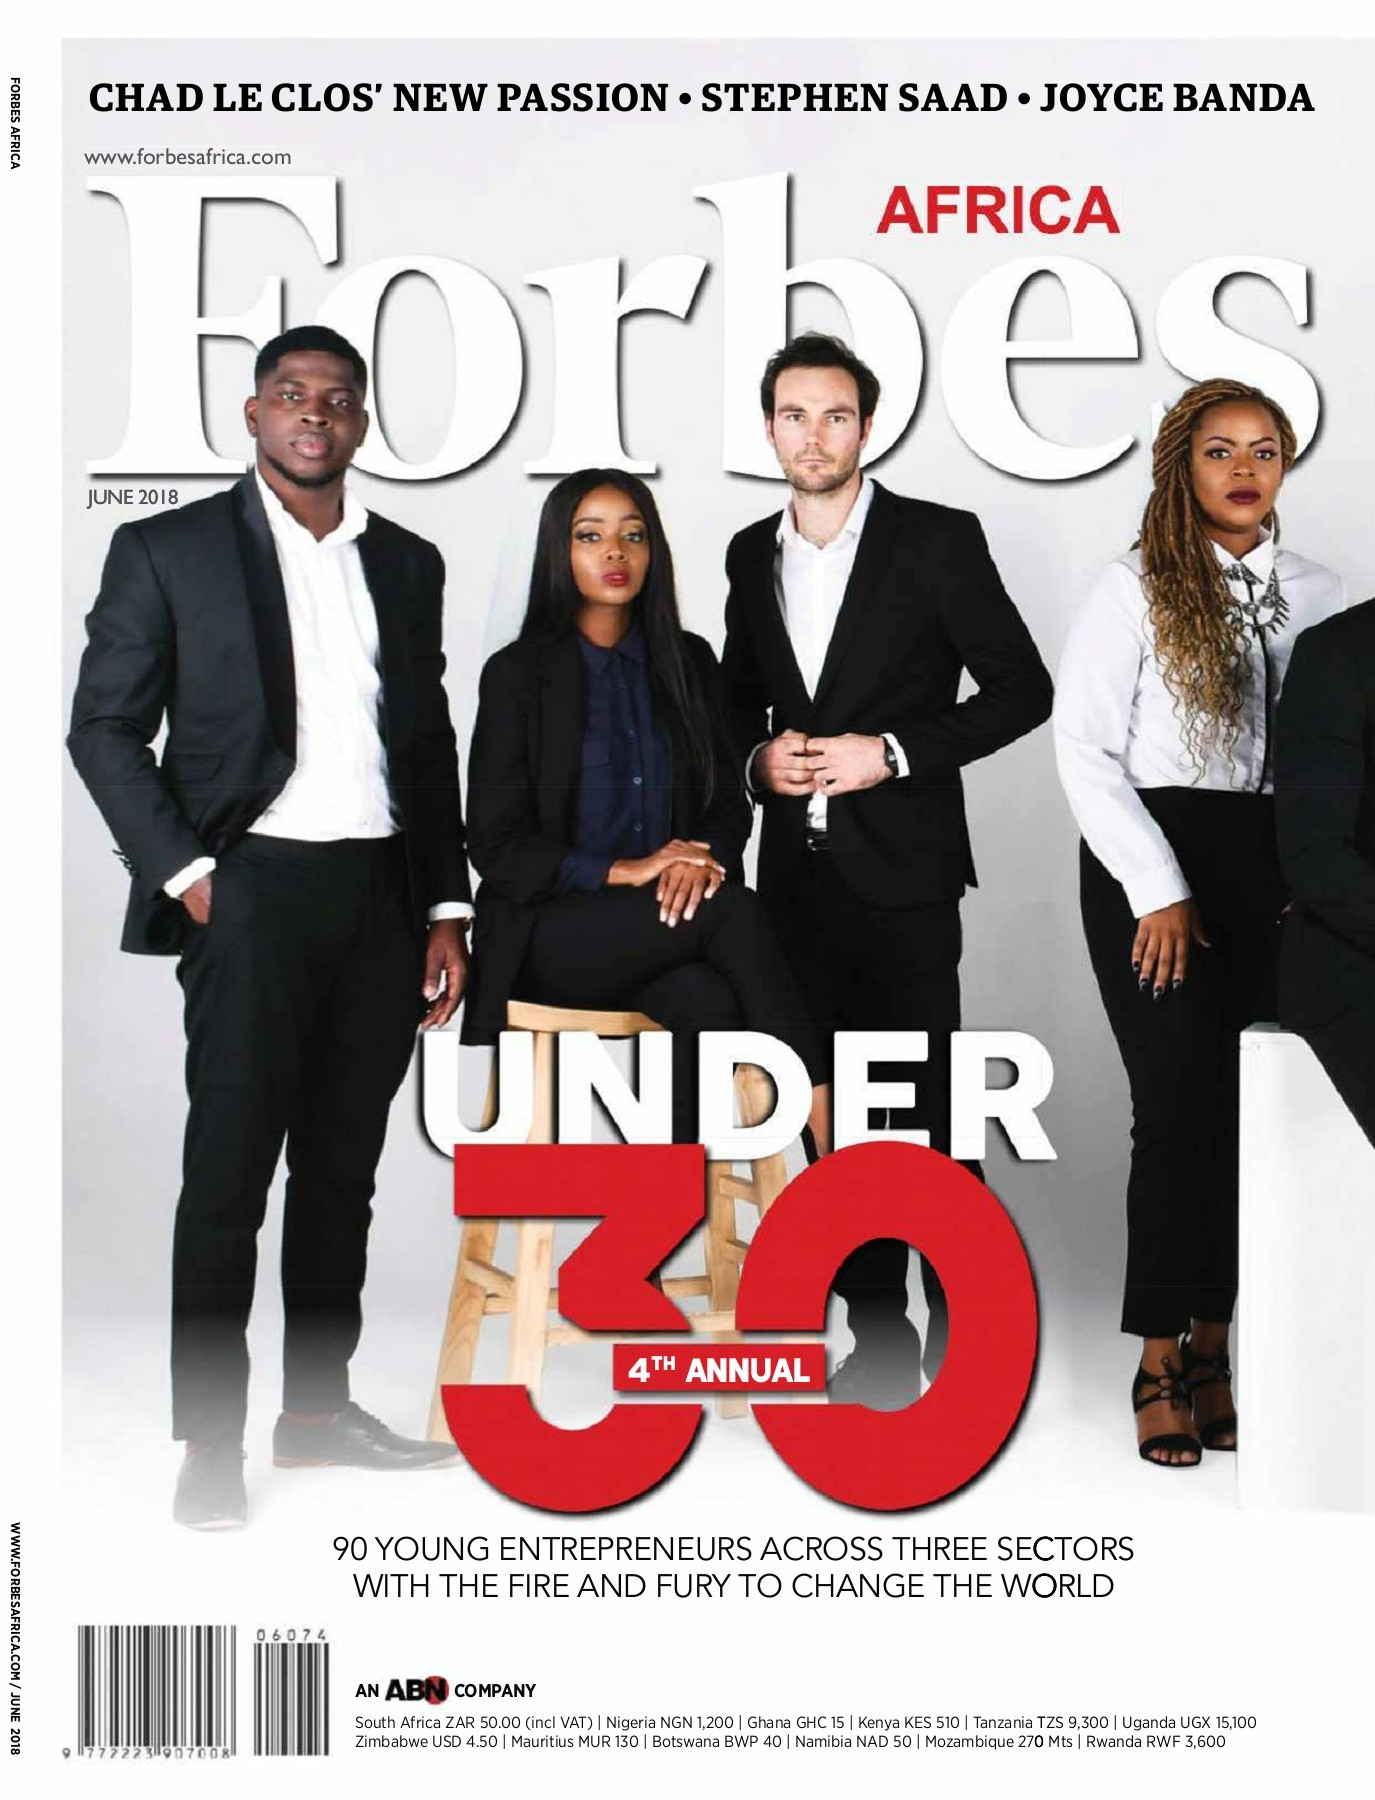 Angelique Thomas Nue forbesafrica-june2018 pages 1 - 50 - text version | pubhtml5